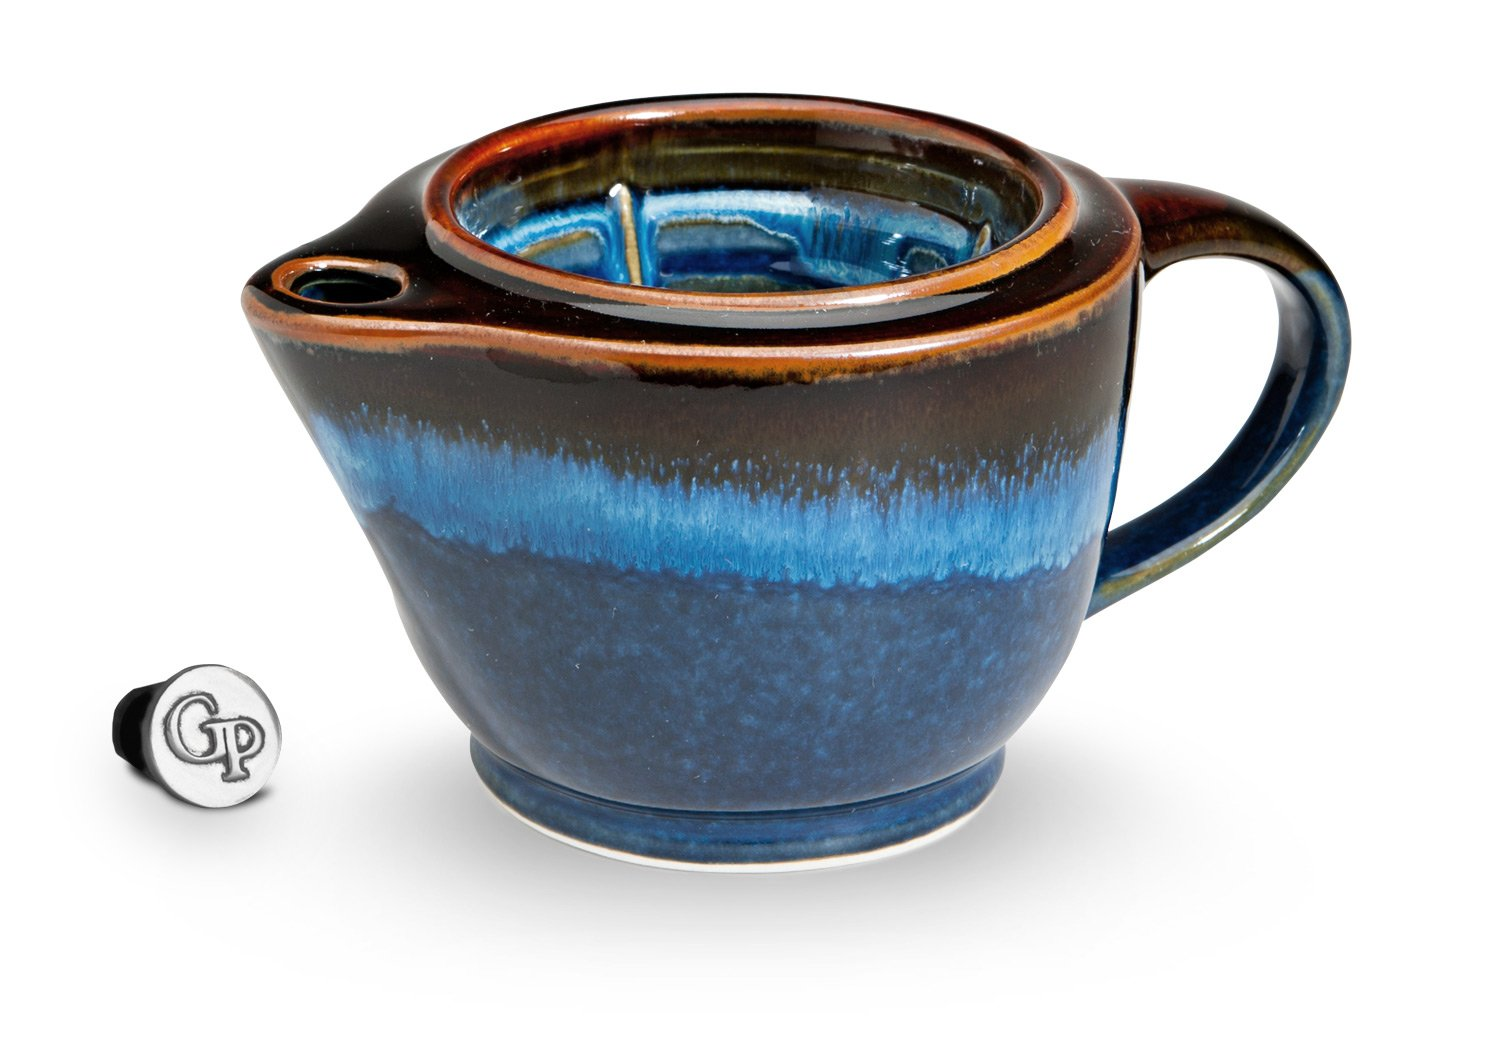 Georgetown Pottery G20 Shaving Scuttle Mug - Hamada & Blue by Georgetown Pottery